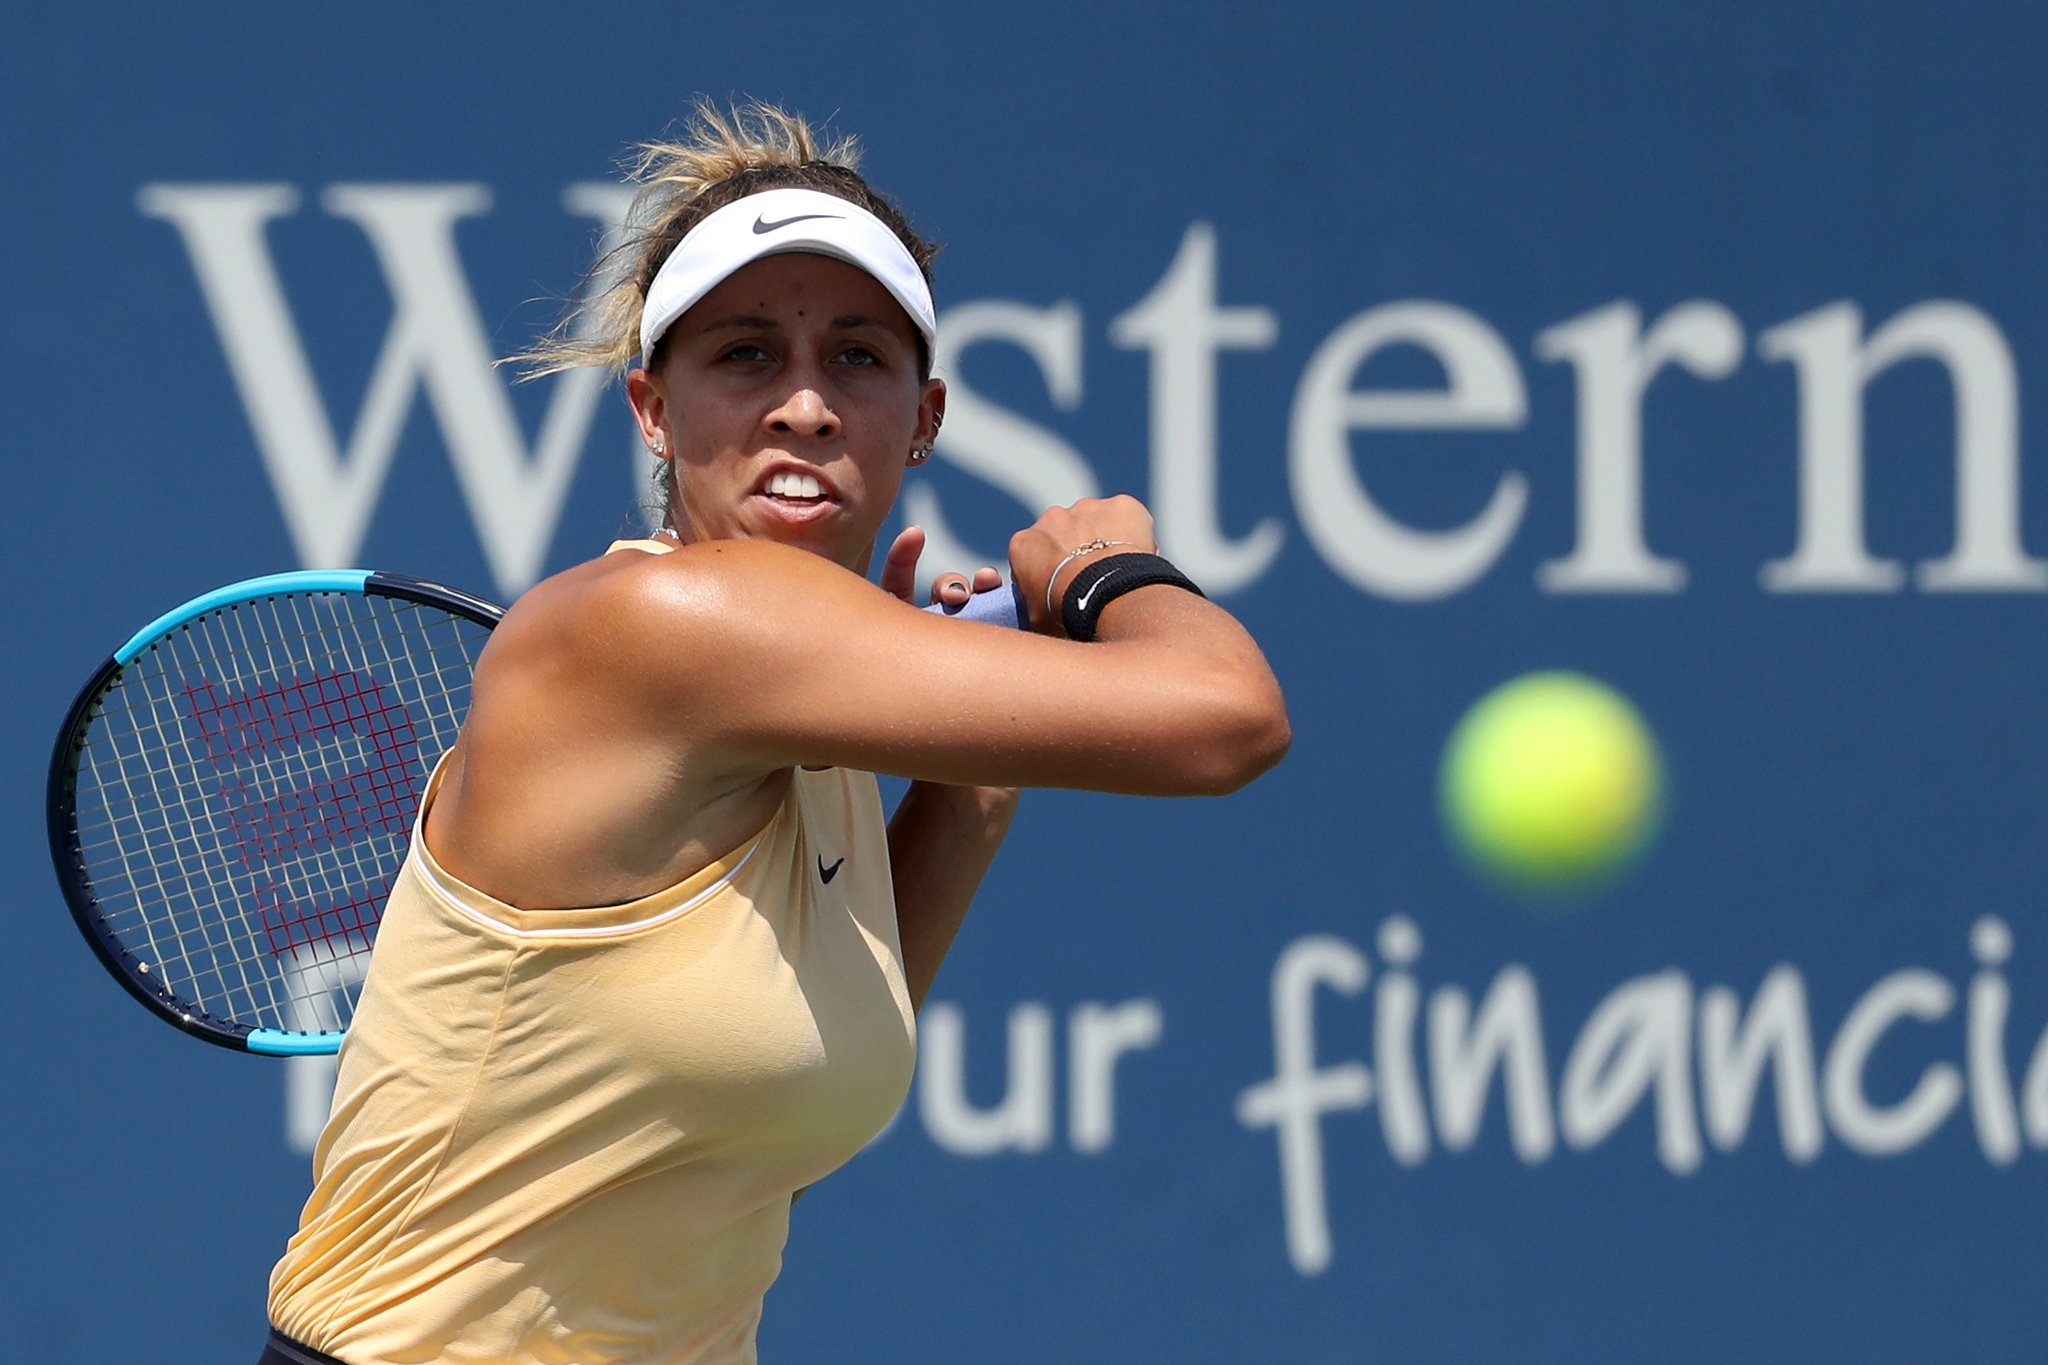 Keys holds off Aussie Open champ Kenin in Charleston